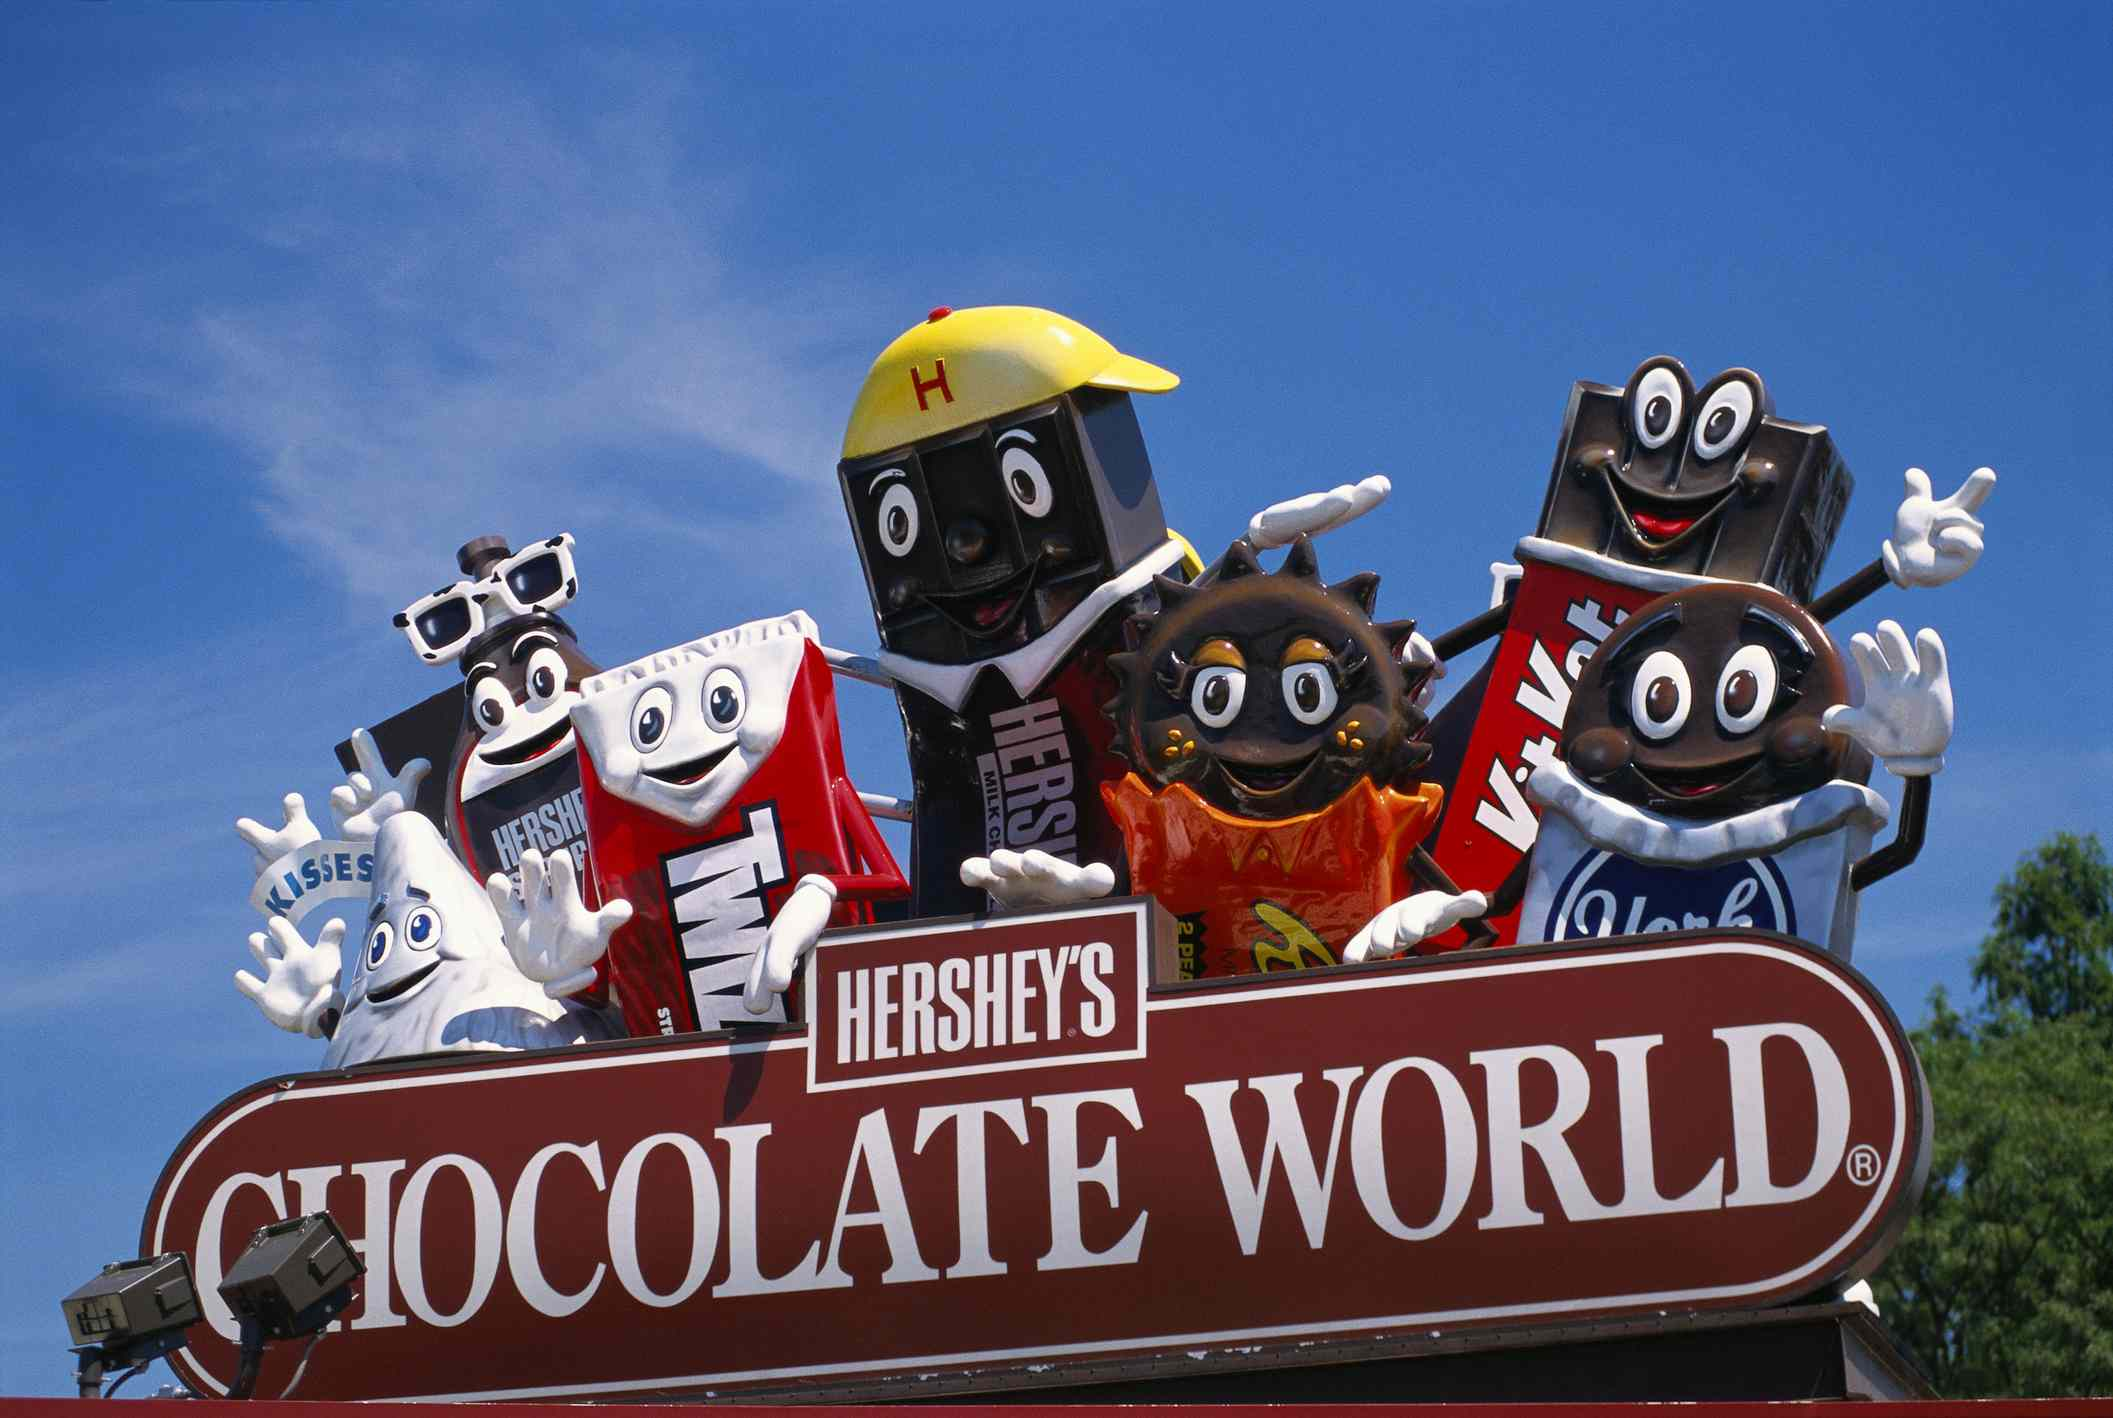 Sign for Hershey's Chocolate World